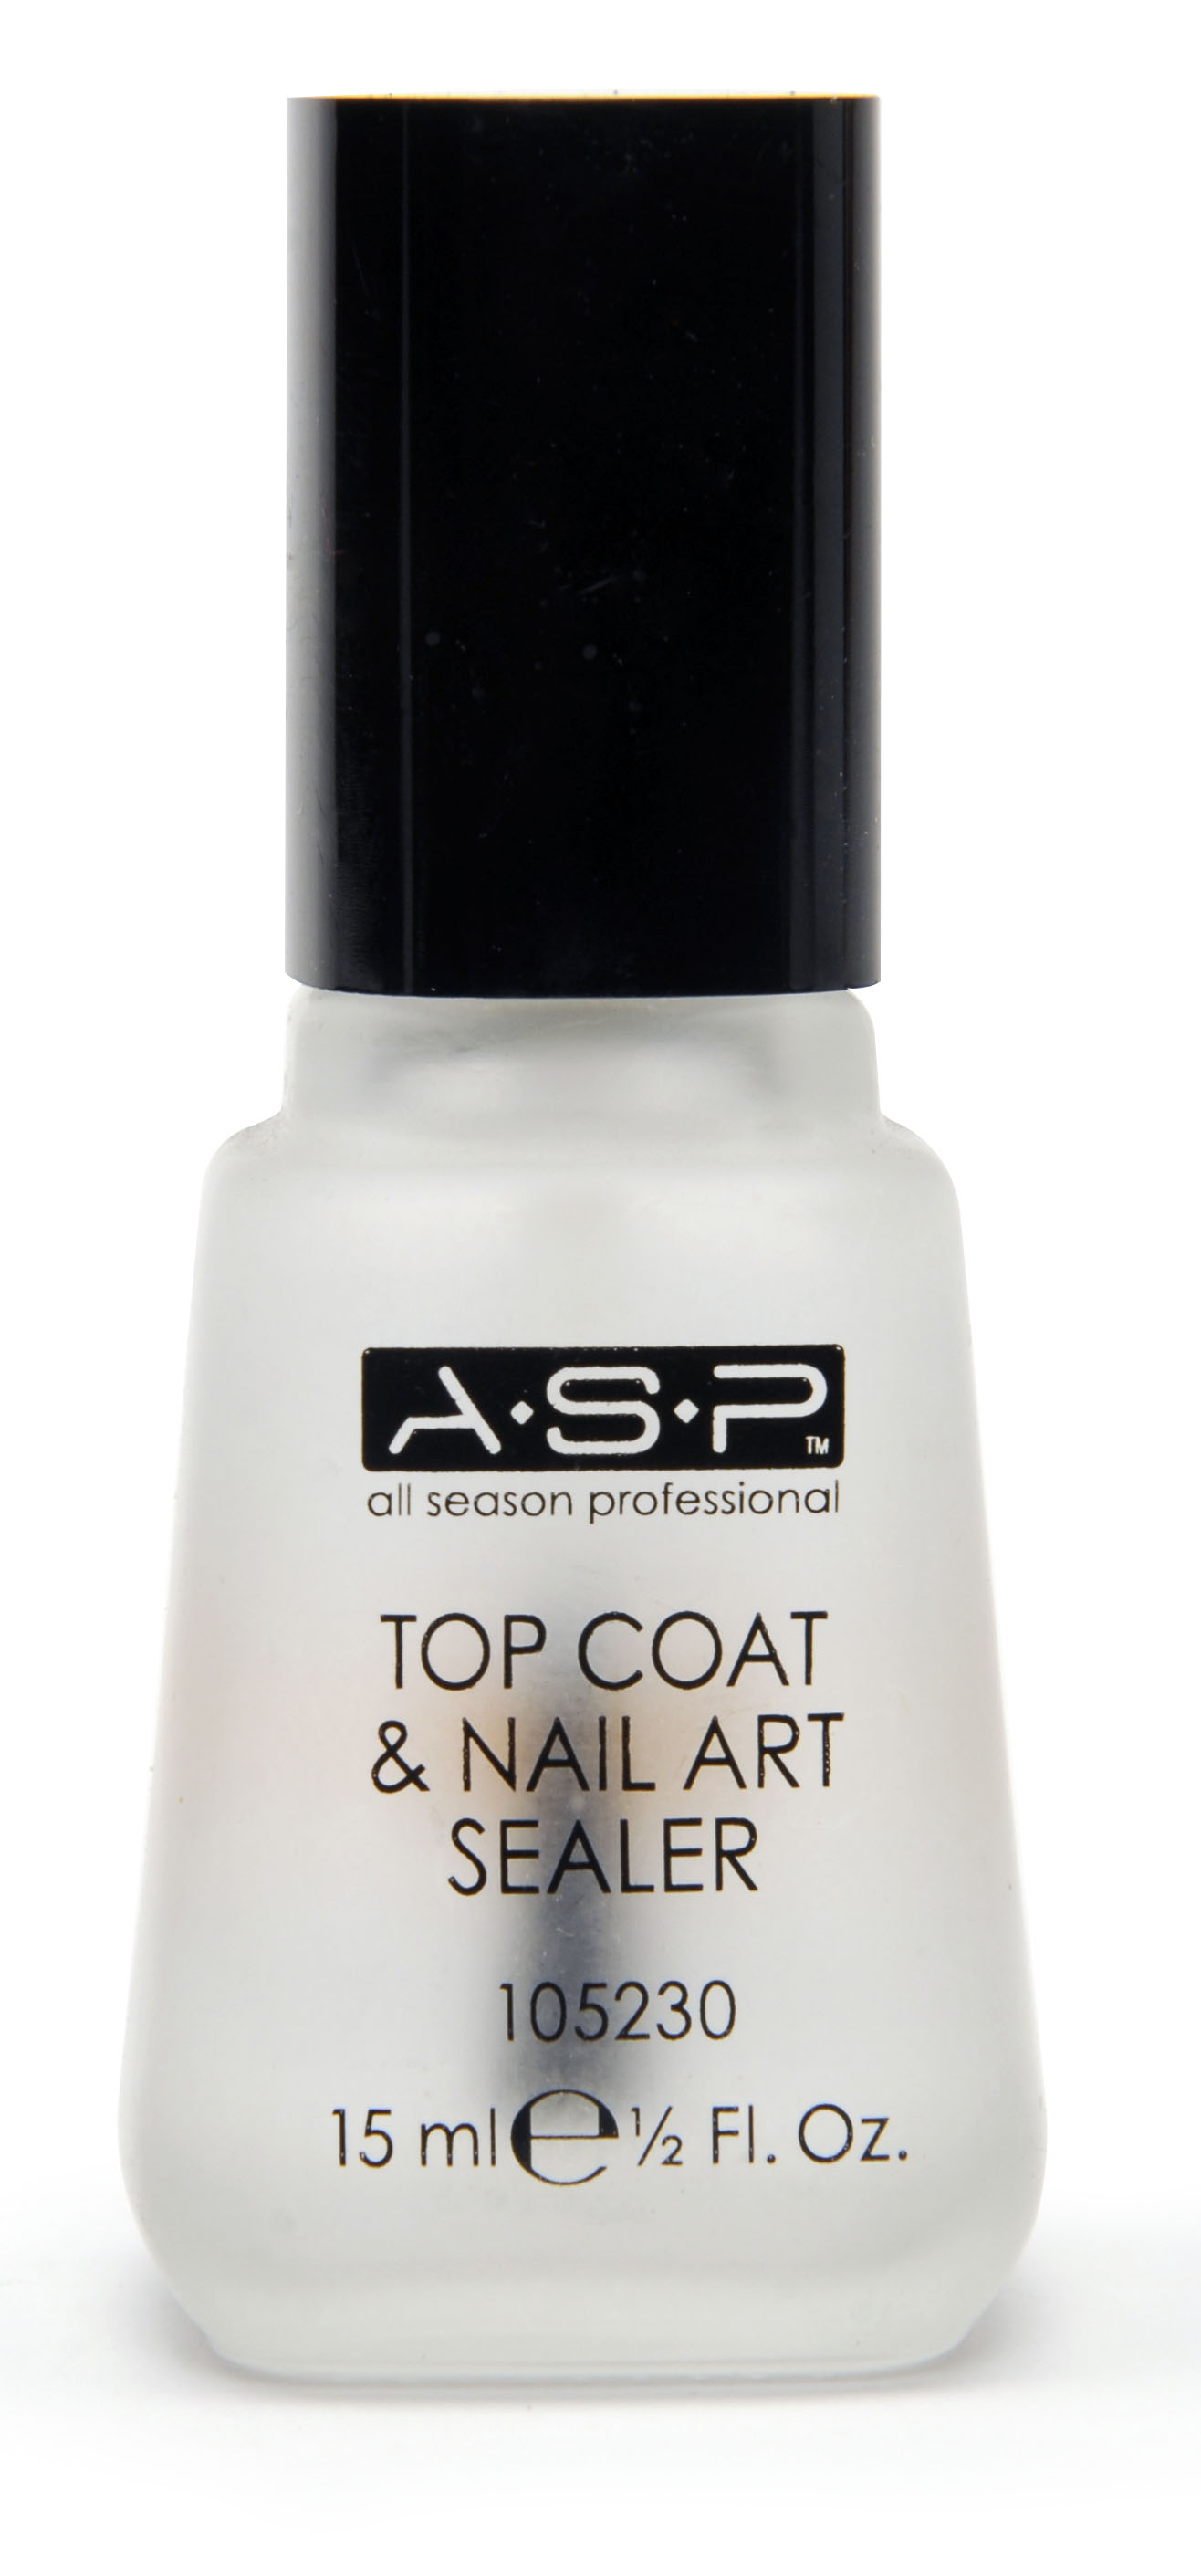 More Than Just A Top Coat Nail Art Sealer Is Designed To Dry And Seal Polish Fast Use Over Your